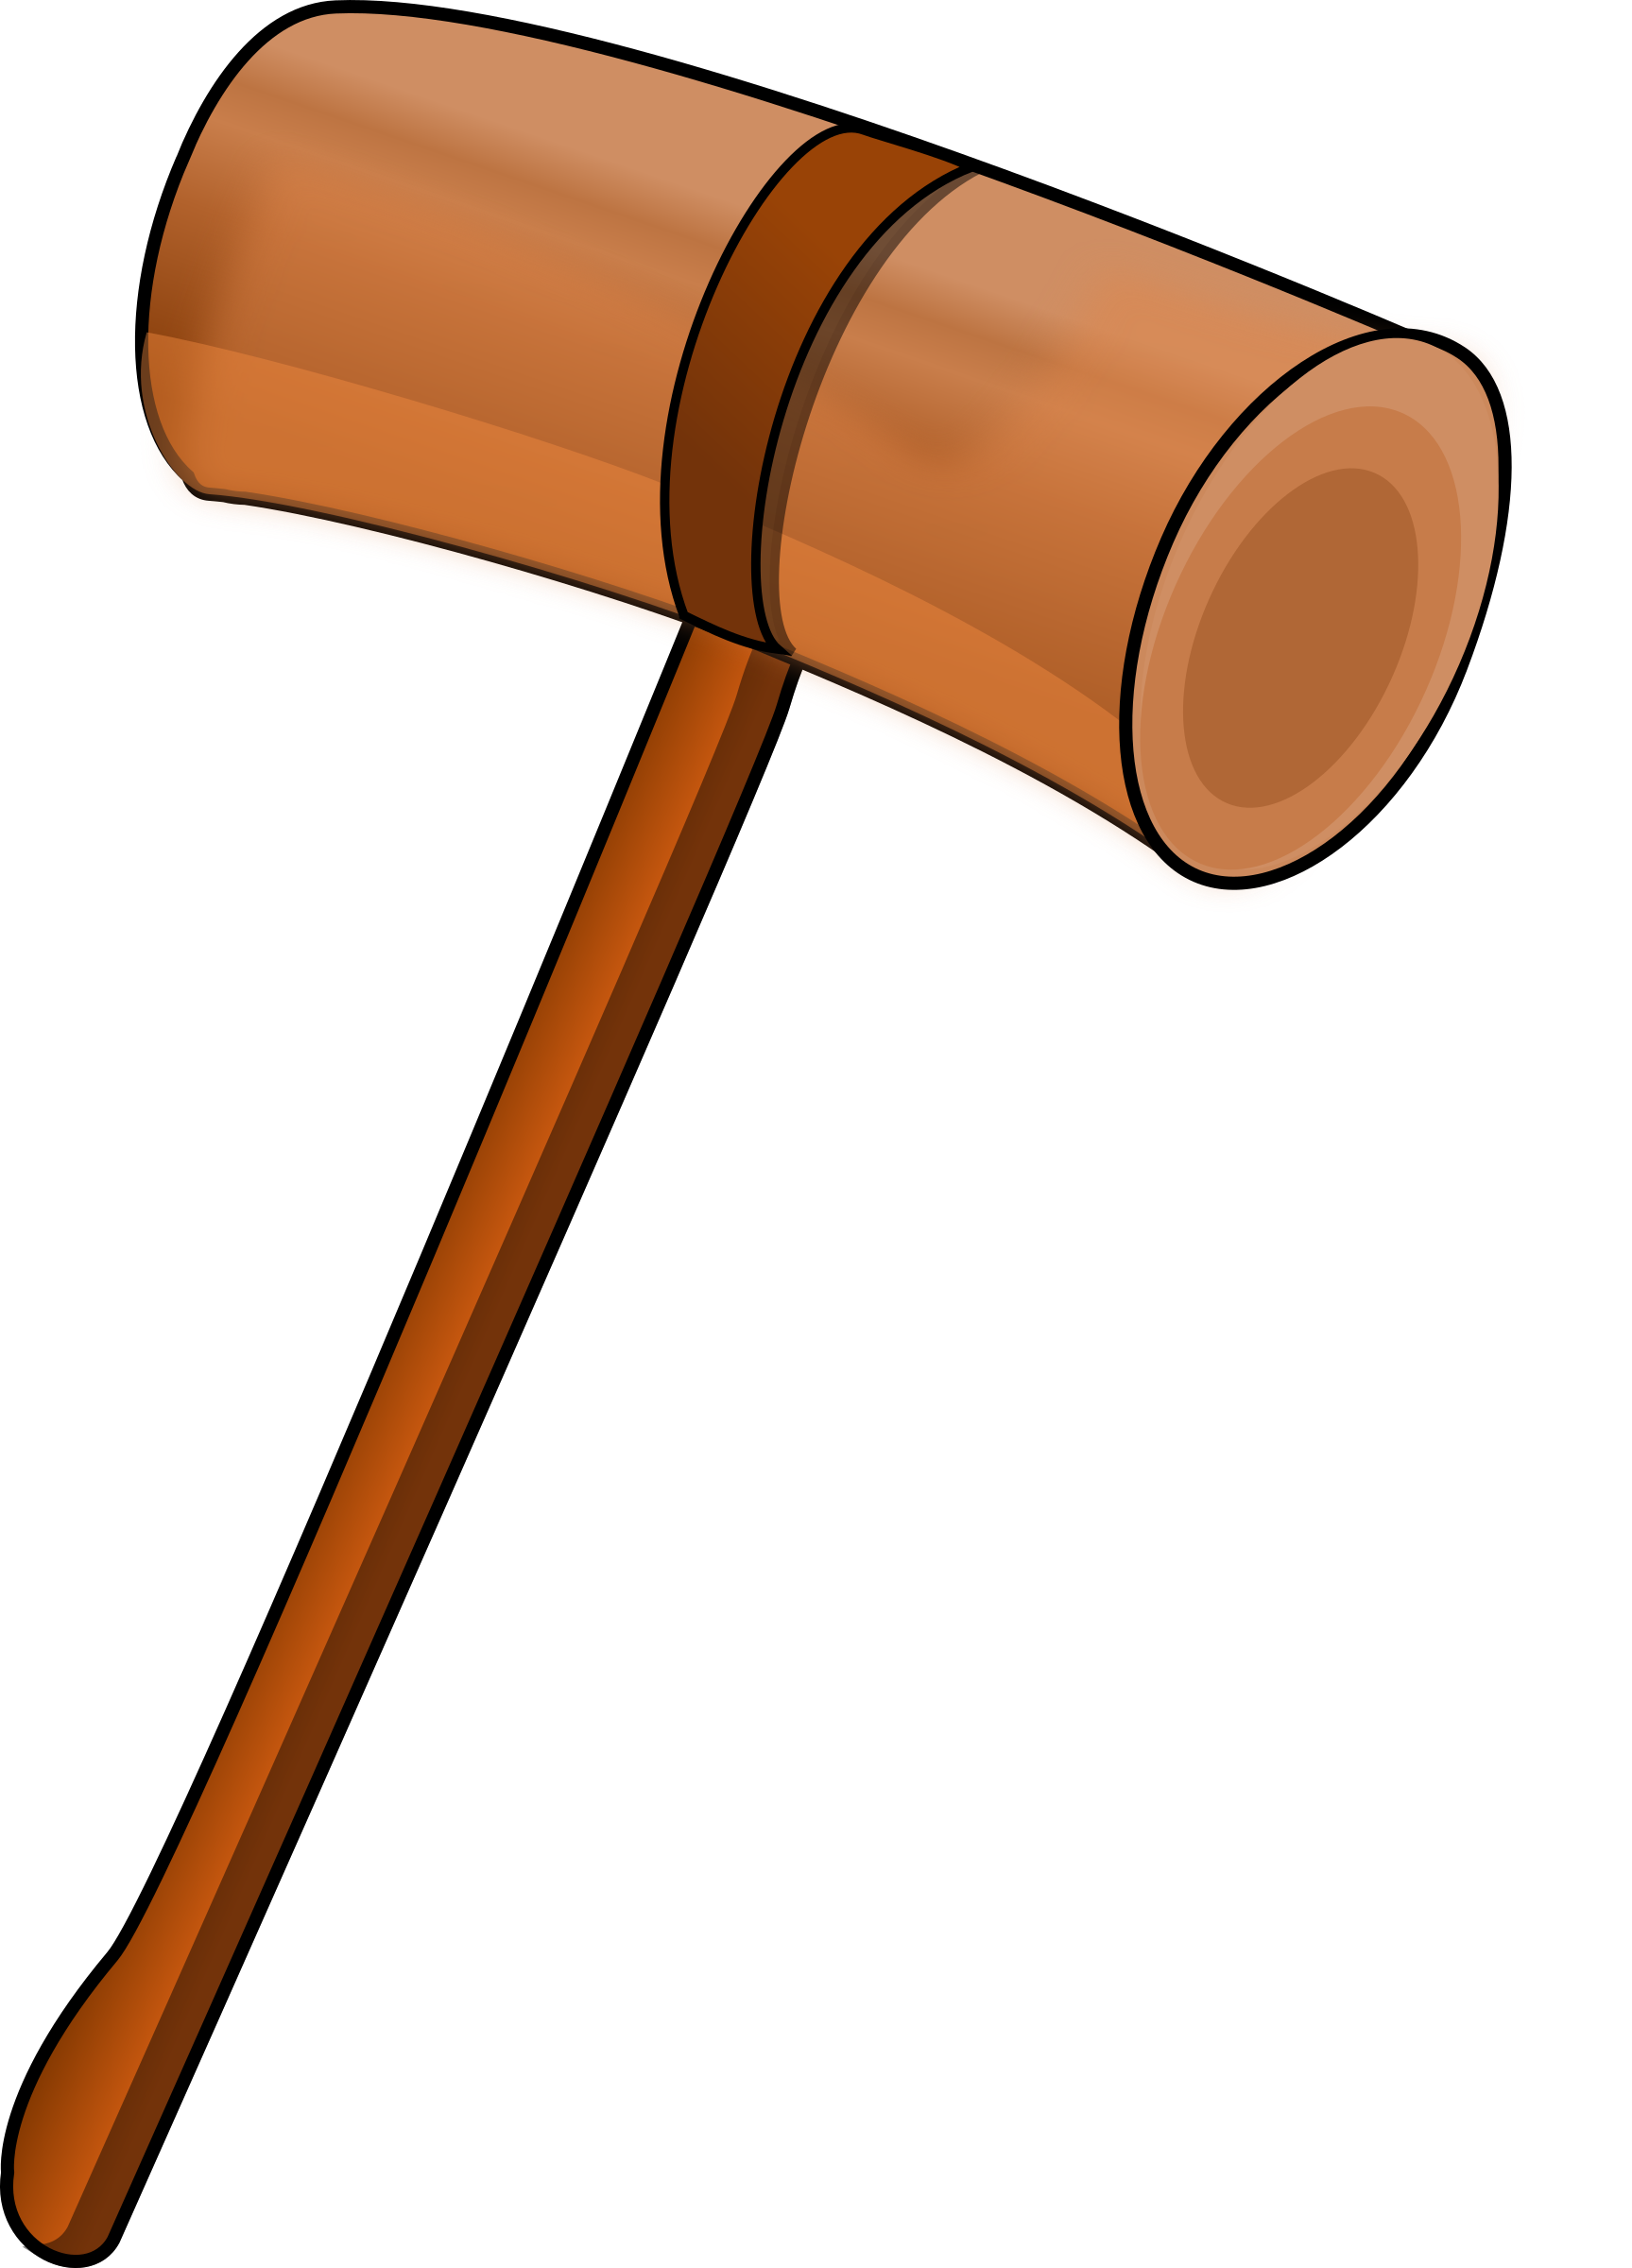 Wooden mallet by Magnesus